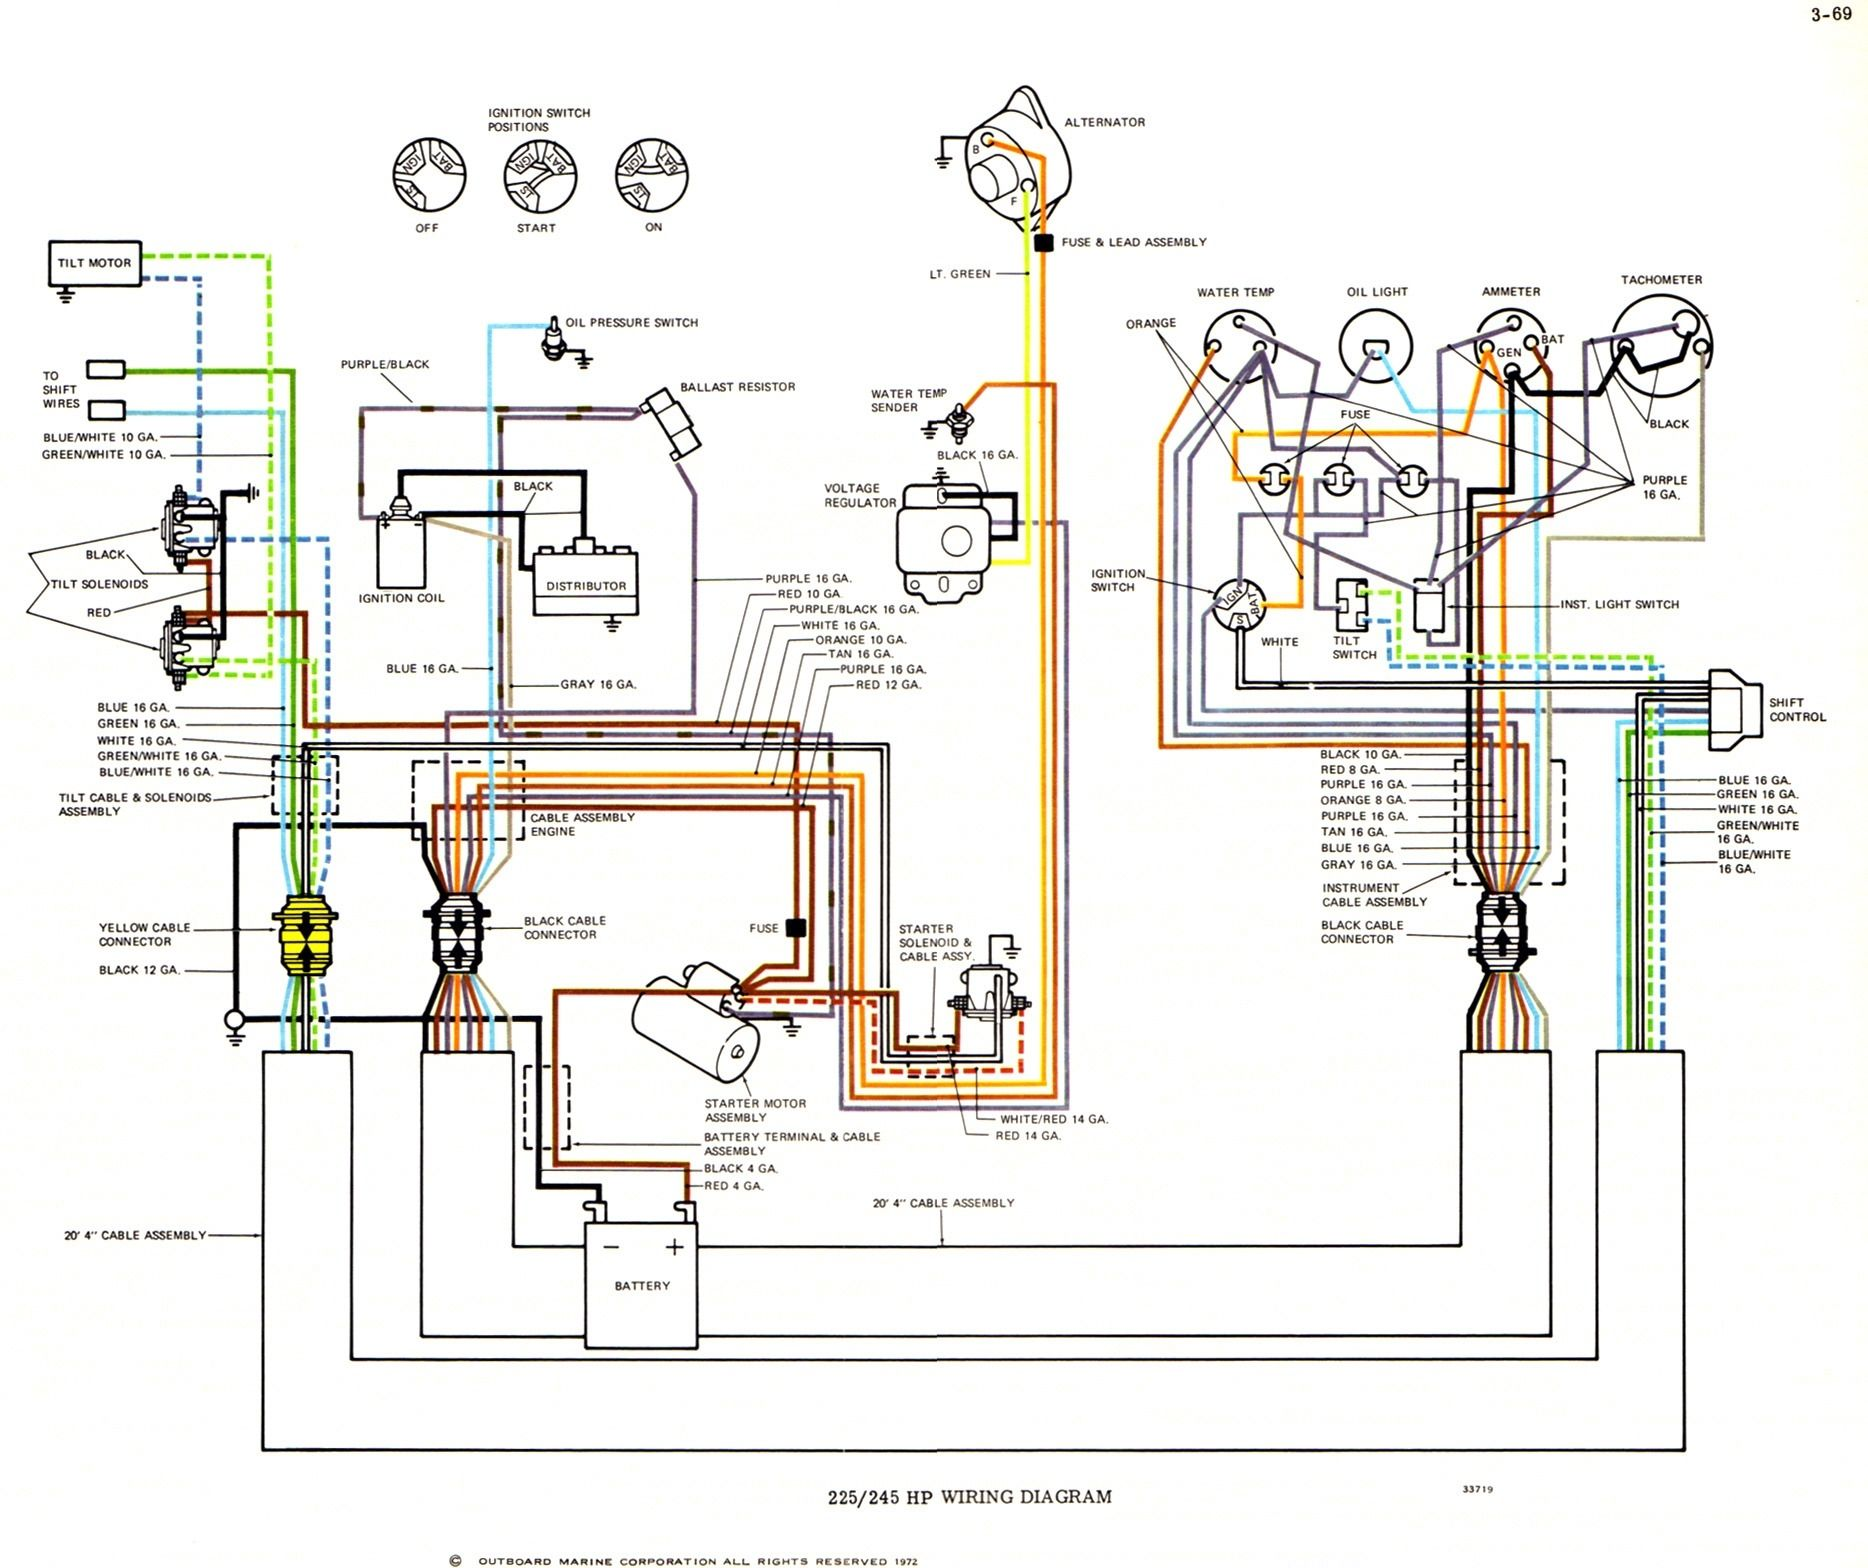 Yamaha Outboard Electrical Wiring Diagram | WiringDiagram ... on